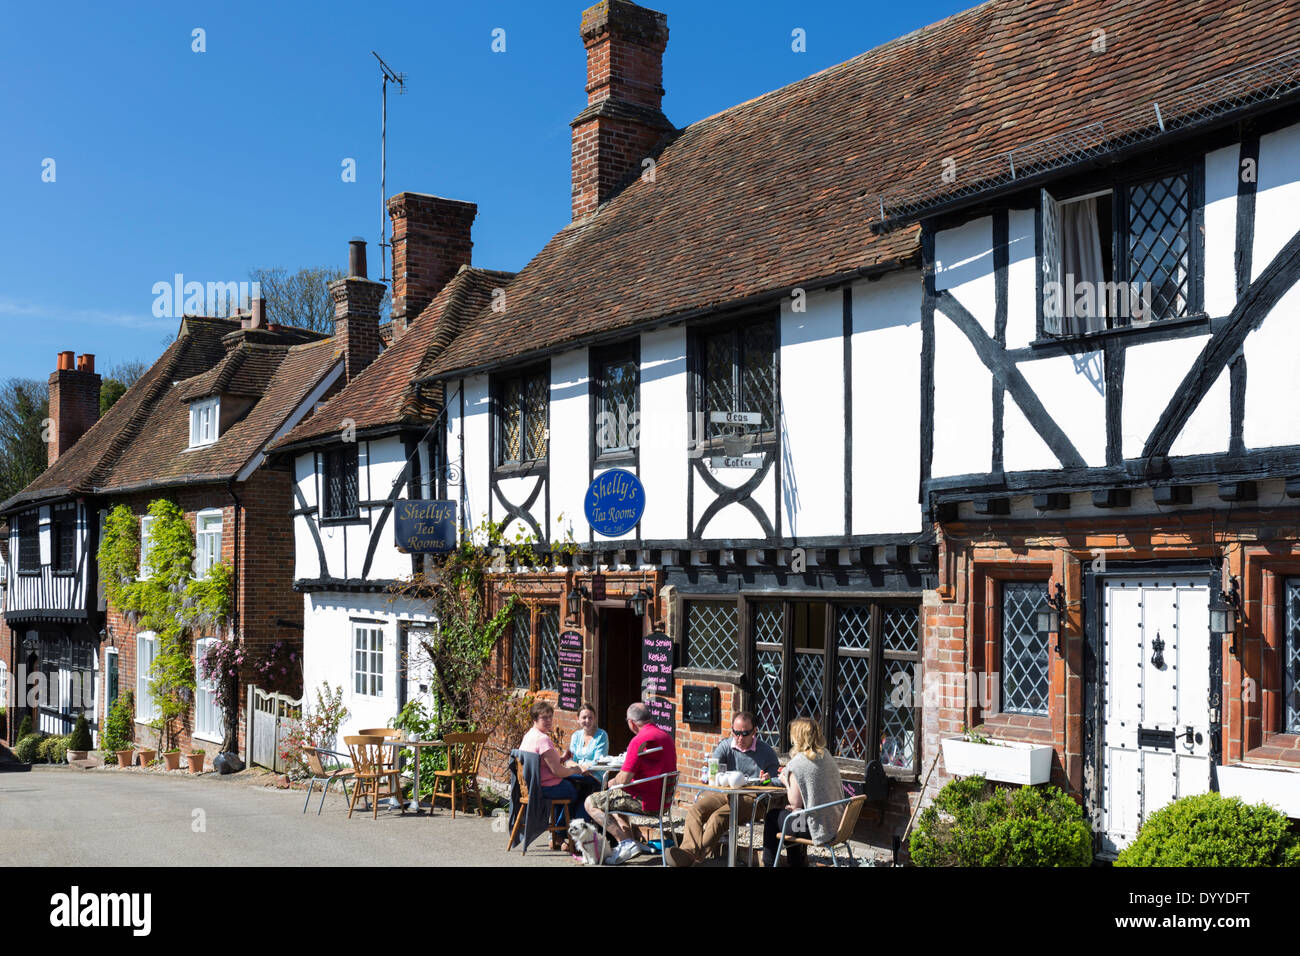 Shelleys Tearooms in the Pretty Village of Chilham nr Canterbury Kent Stock Photo